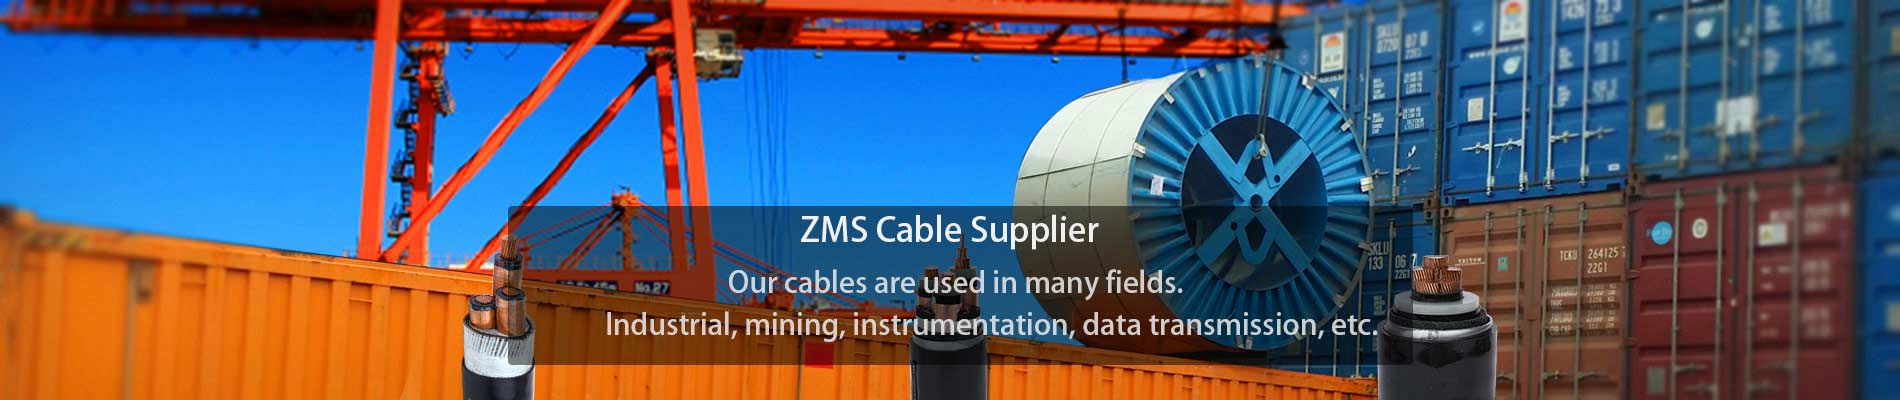 cable-supplier